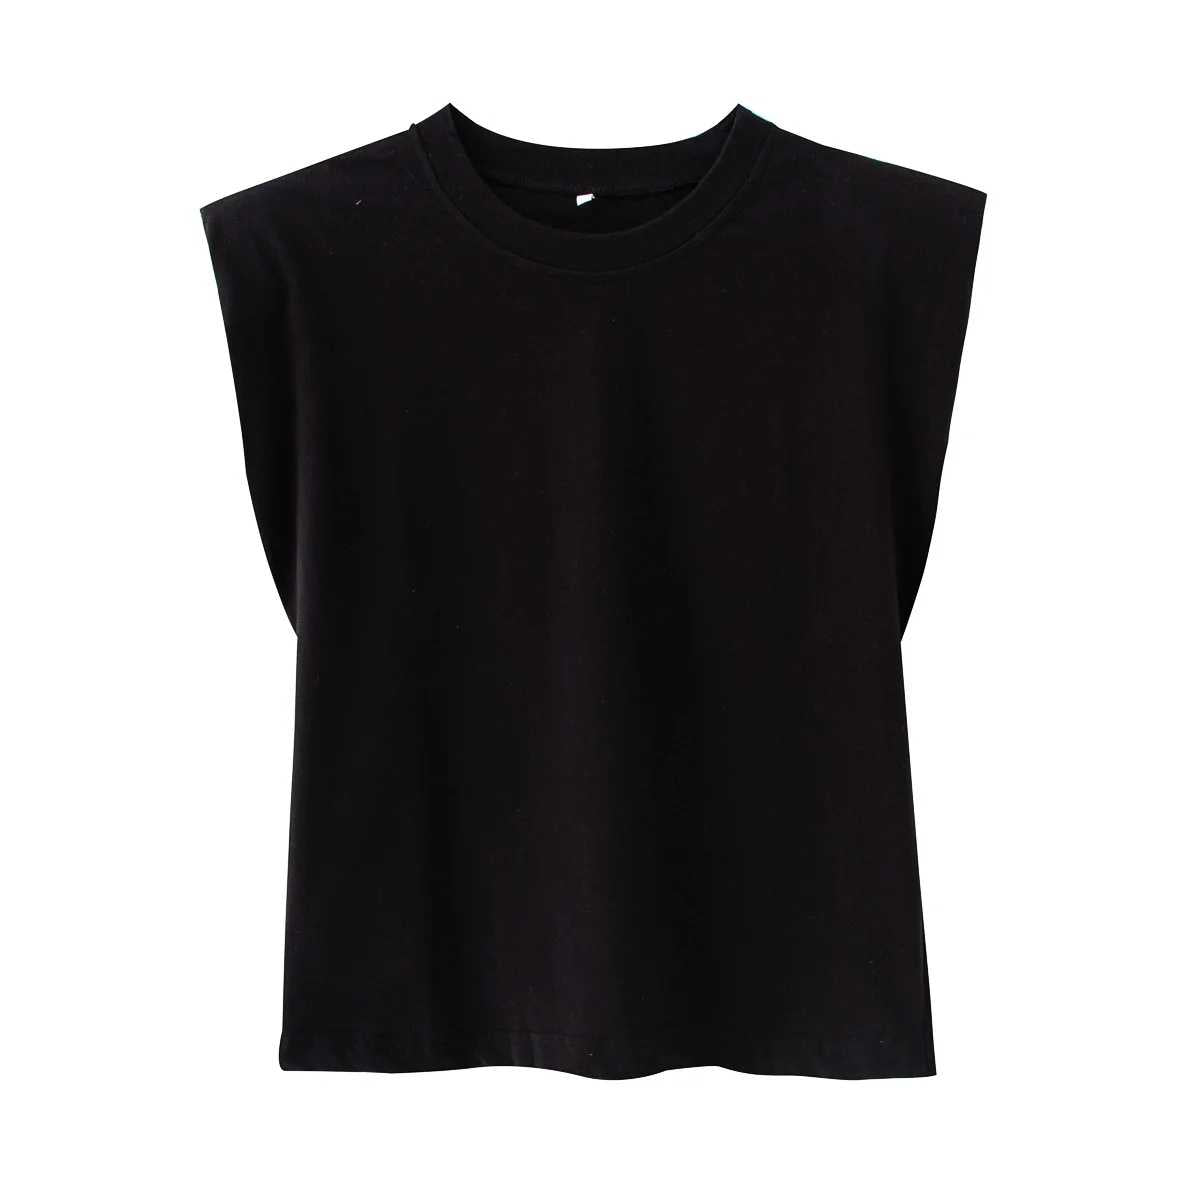 Cool Padded Shoulder Tank Top Tee Shirt With Shoulder Pad